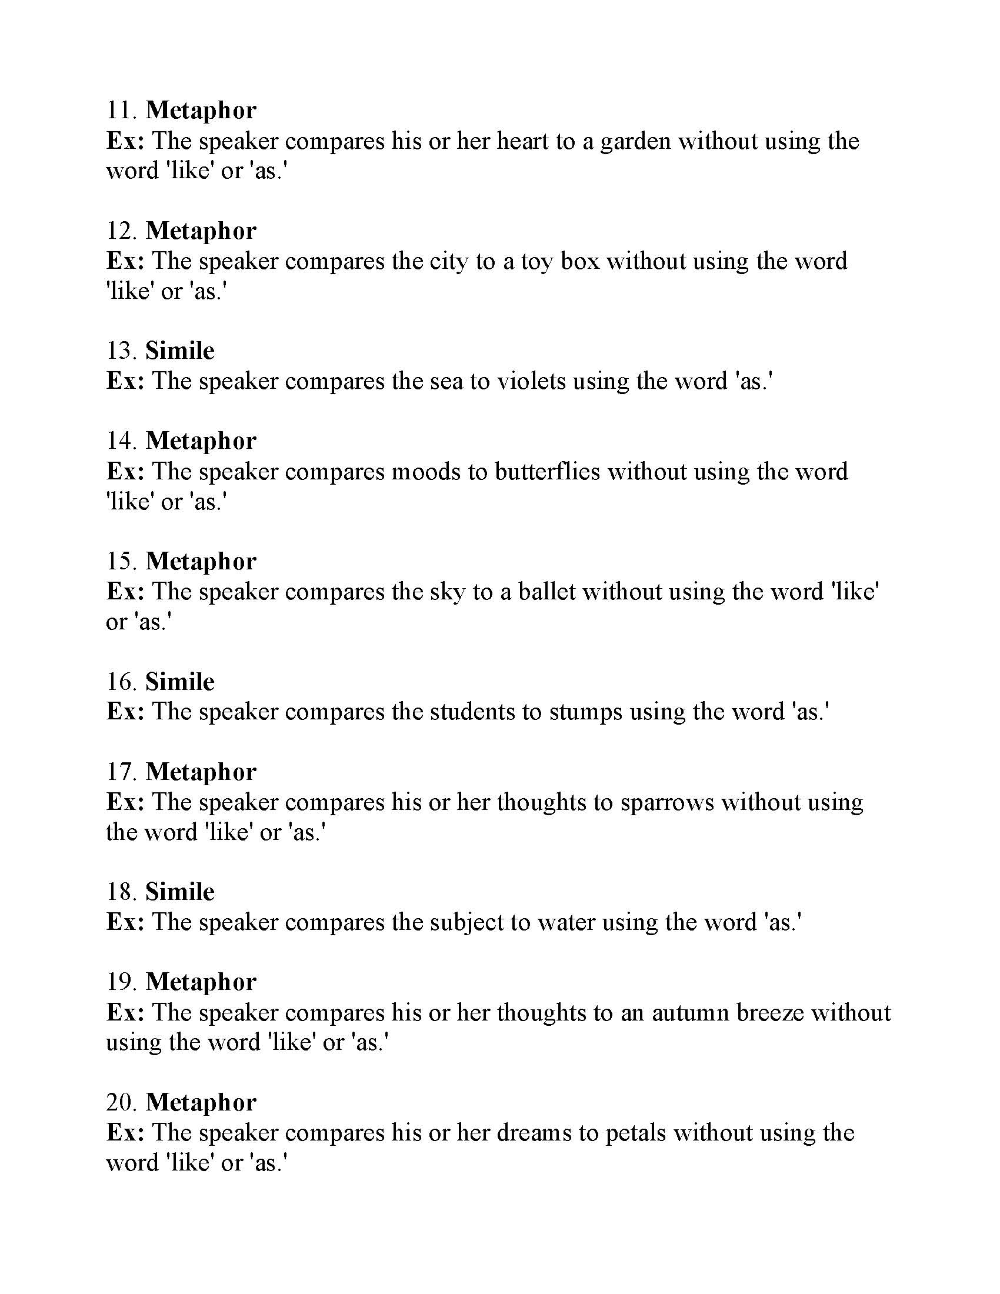 Simile And Metaphor Worksheet 3 Answers Similes And Metaphors Simile Metaphor I hope that these hyperbole and understatement worksheets help students master these tricky figurative language techniques. simile and metaphor worksheet 3